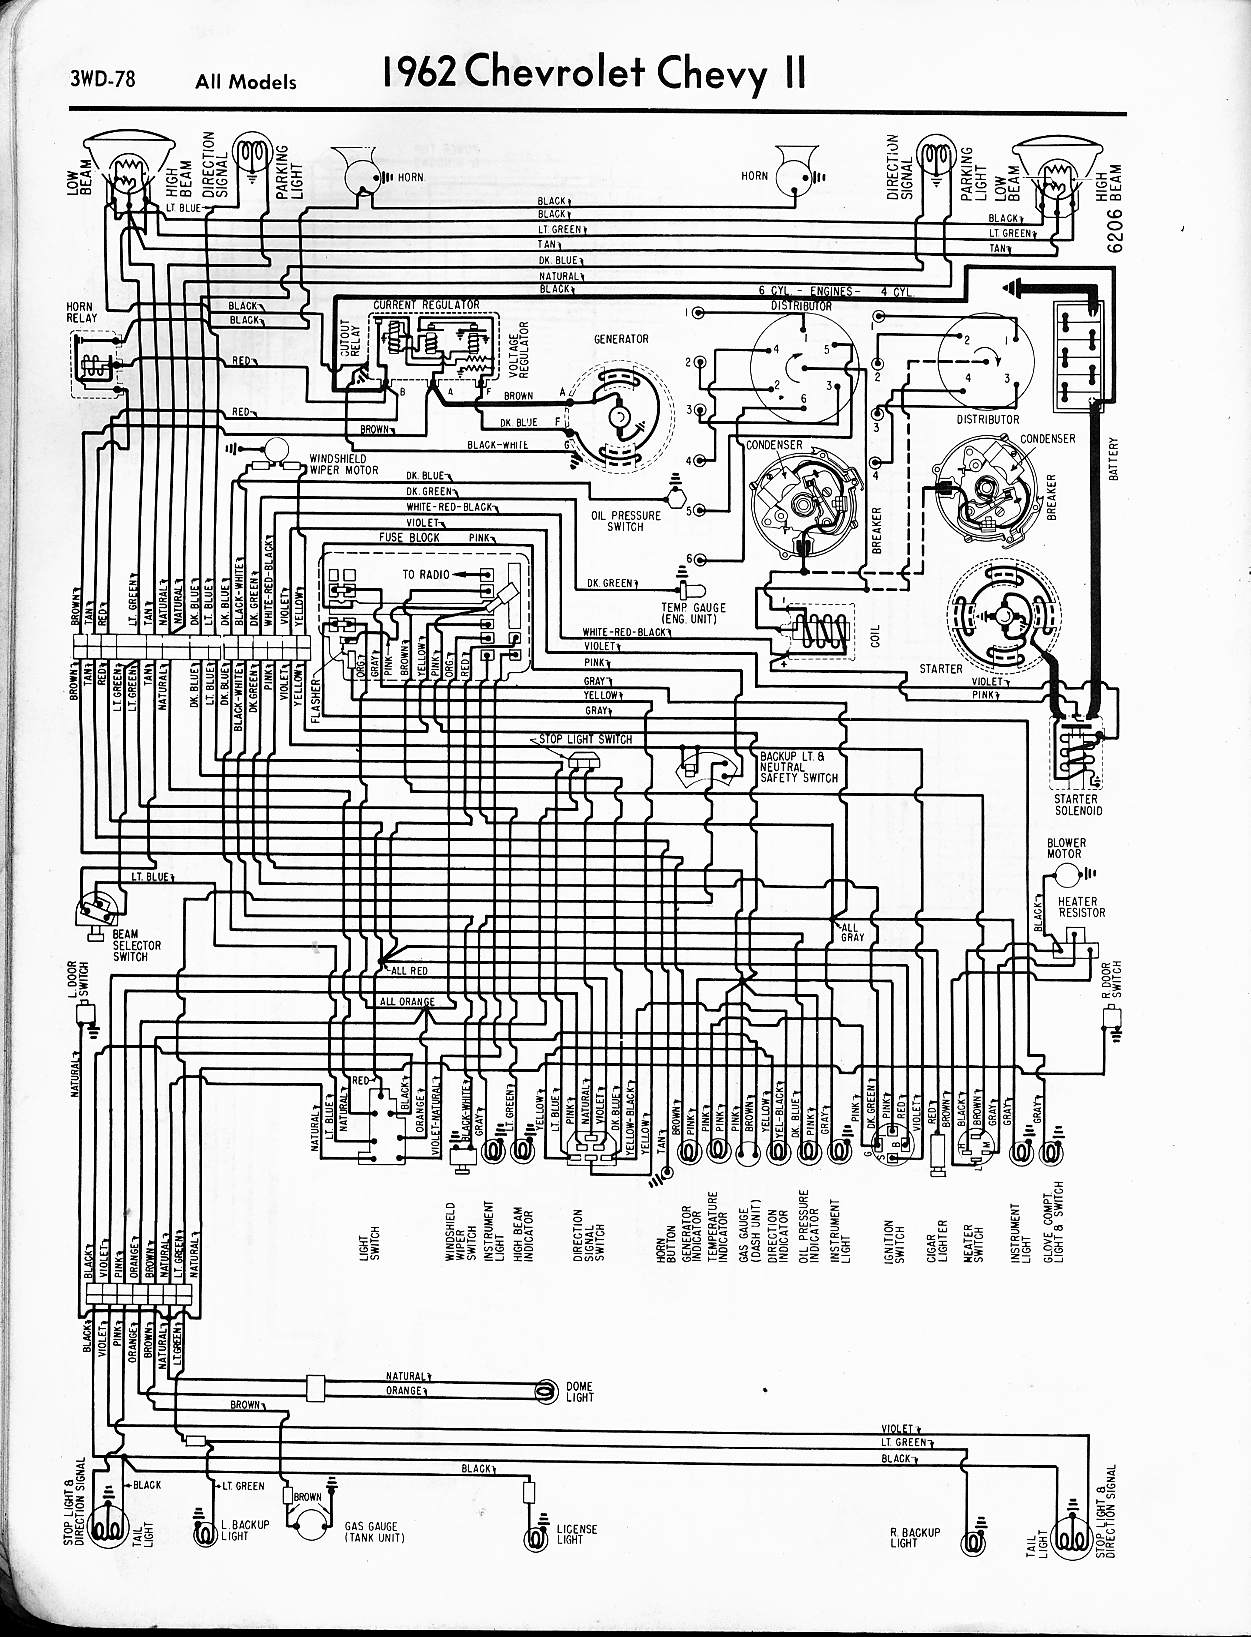 MWireChev62_3WD 078 1963 c10 pickup wiring diagram pdf chevy wiring diagrams \u2022 free 67 Chevy 2 Nova at bakdesigns.co